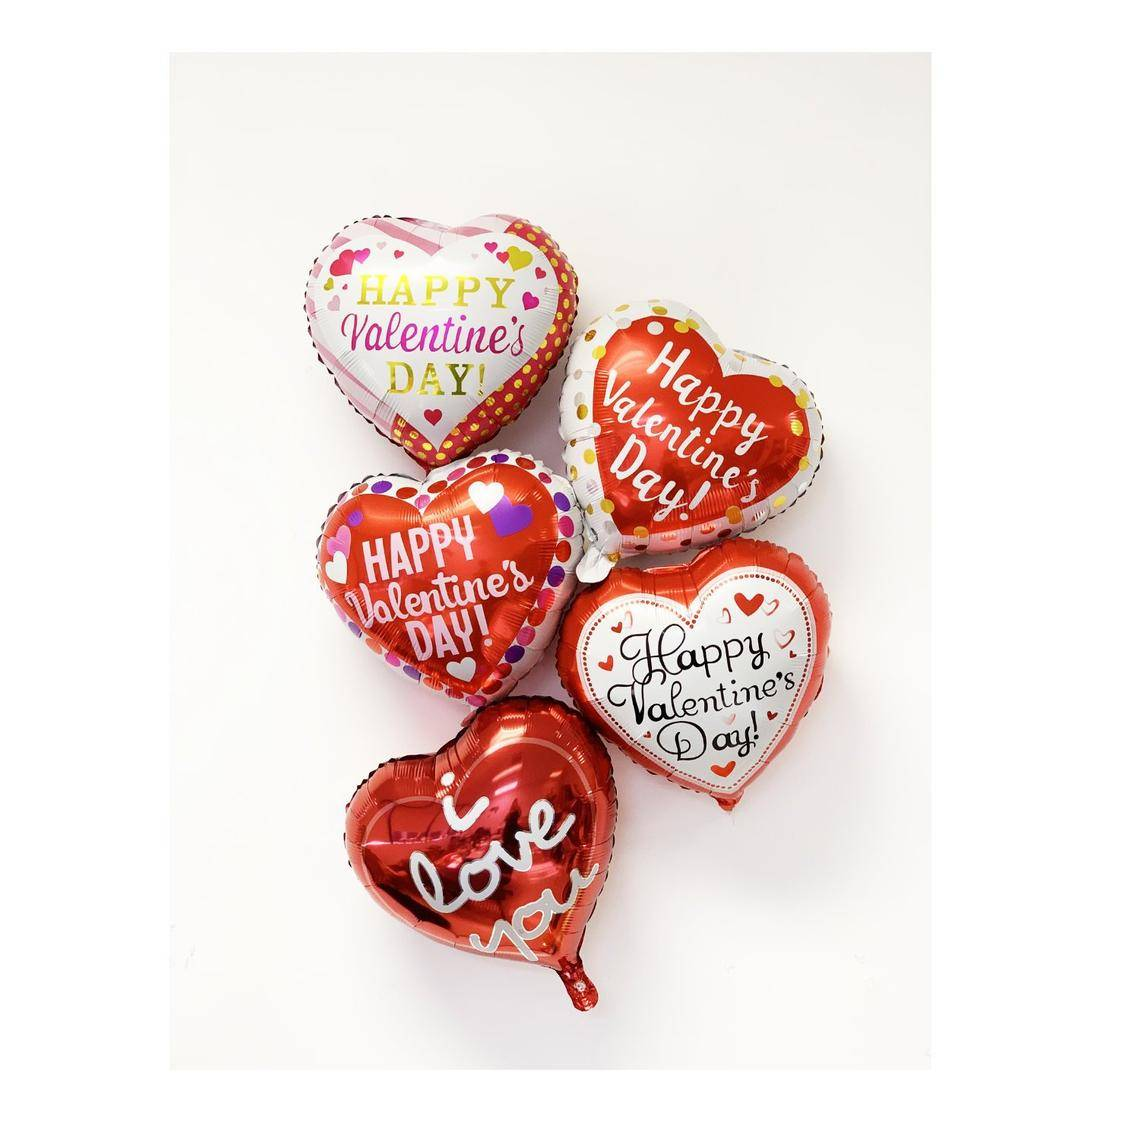 Valentine's day decorations | Valentine's day decorations balloon bouquet for Valentine's Day Party | Valentine's day decorations ideas